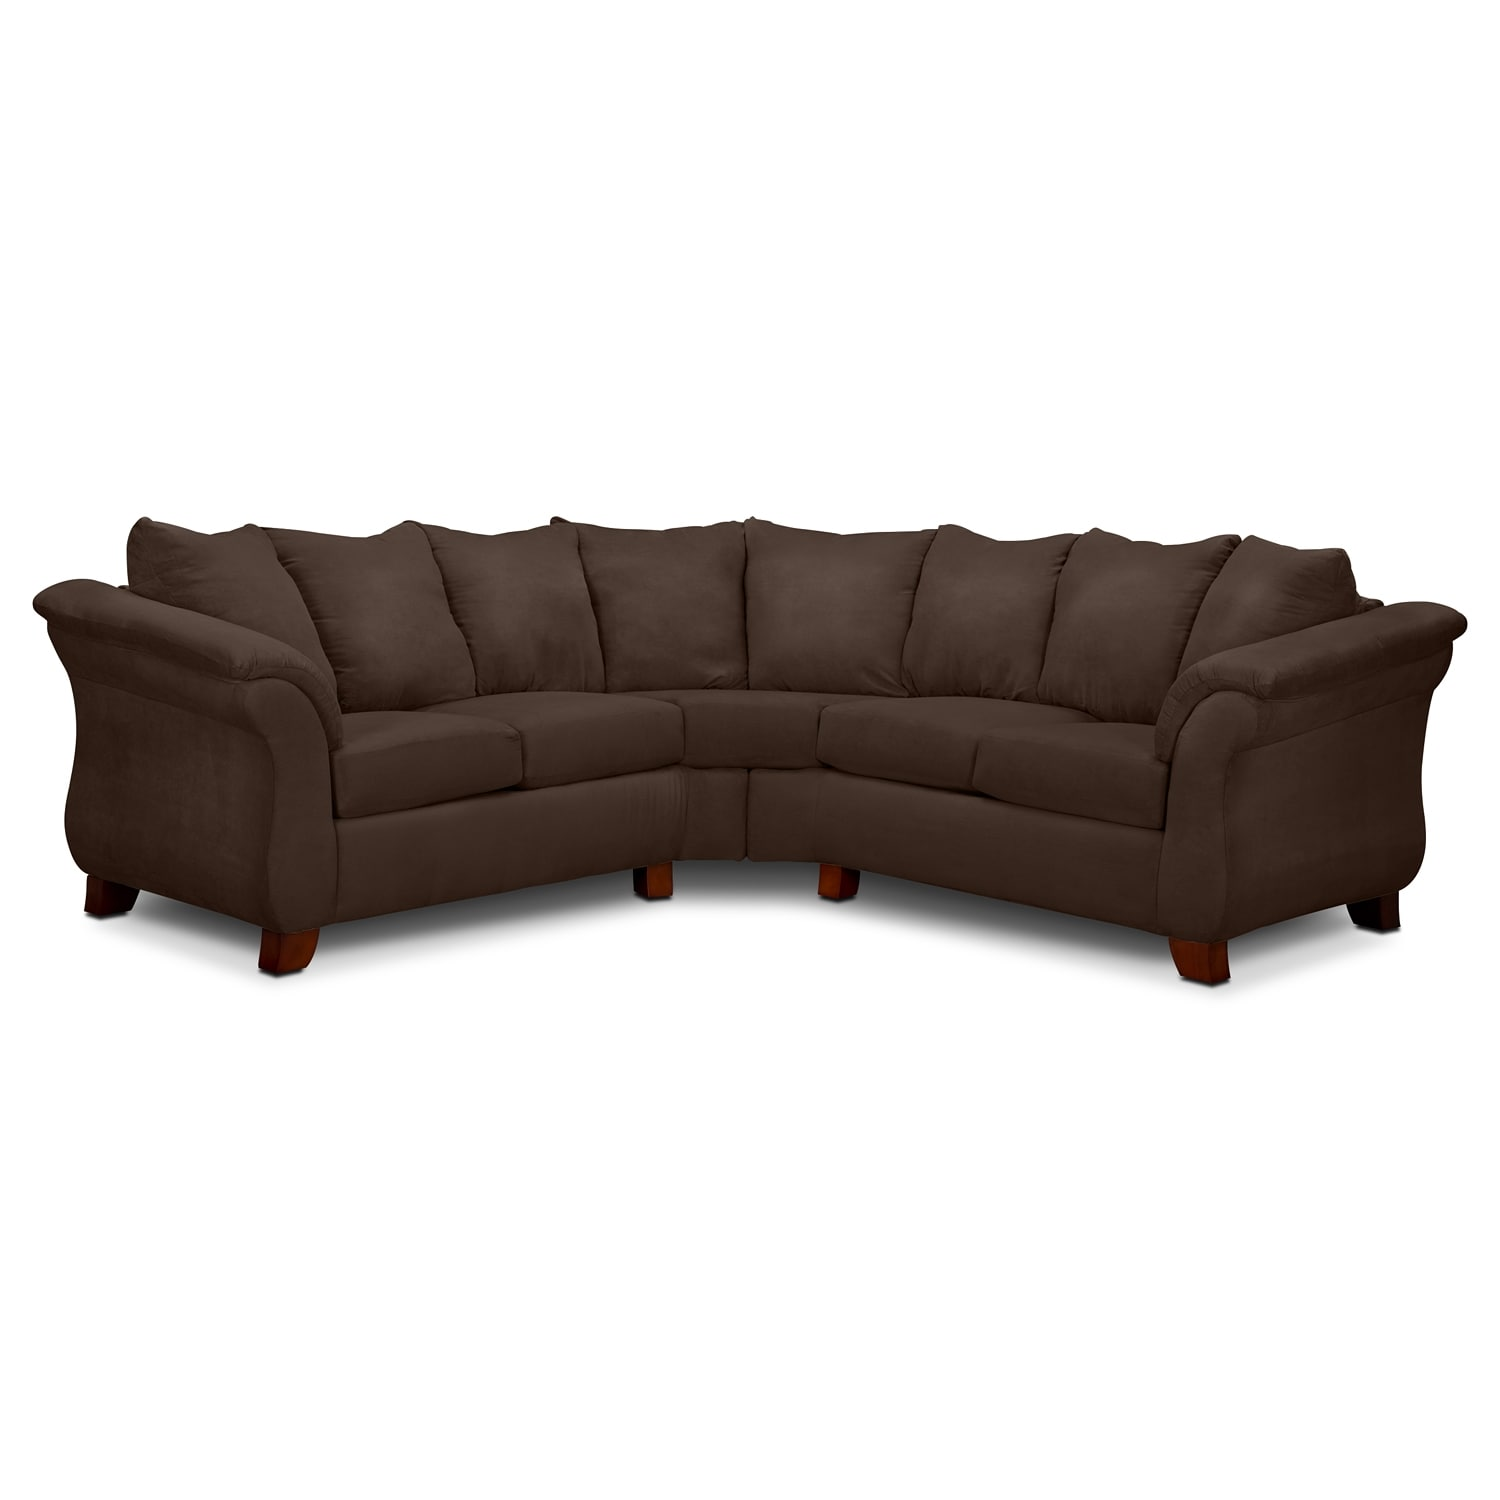 Adrian 2 piece sectional chocolate american signature for American signature couch